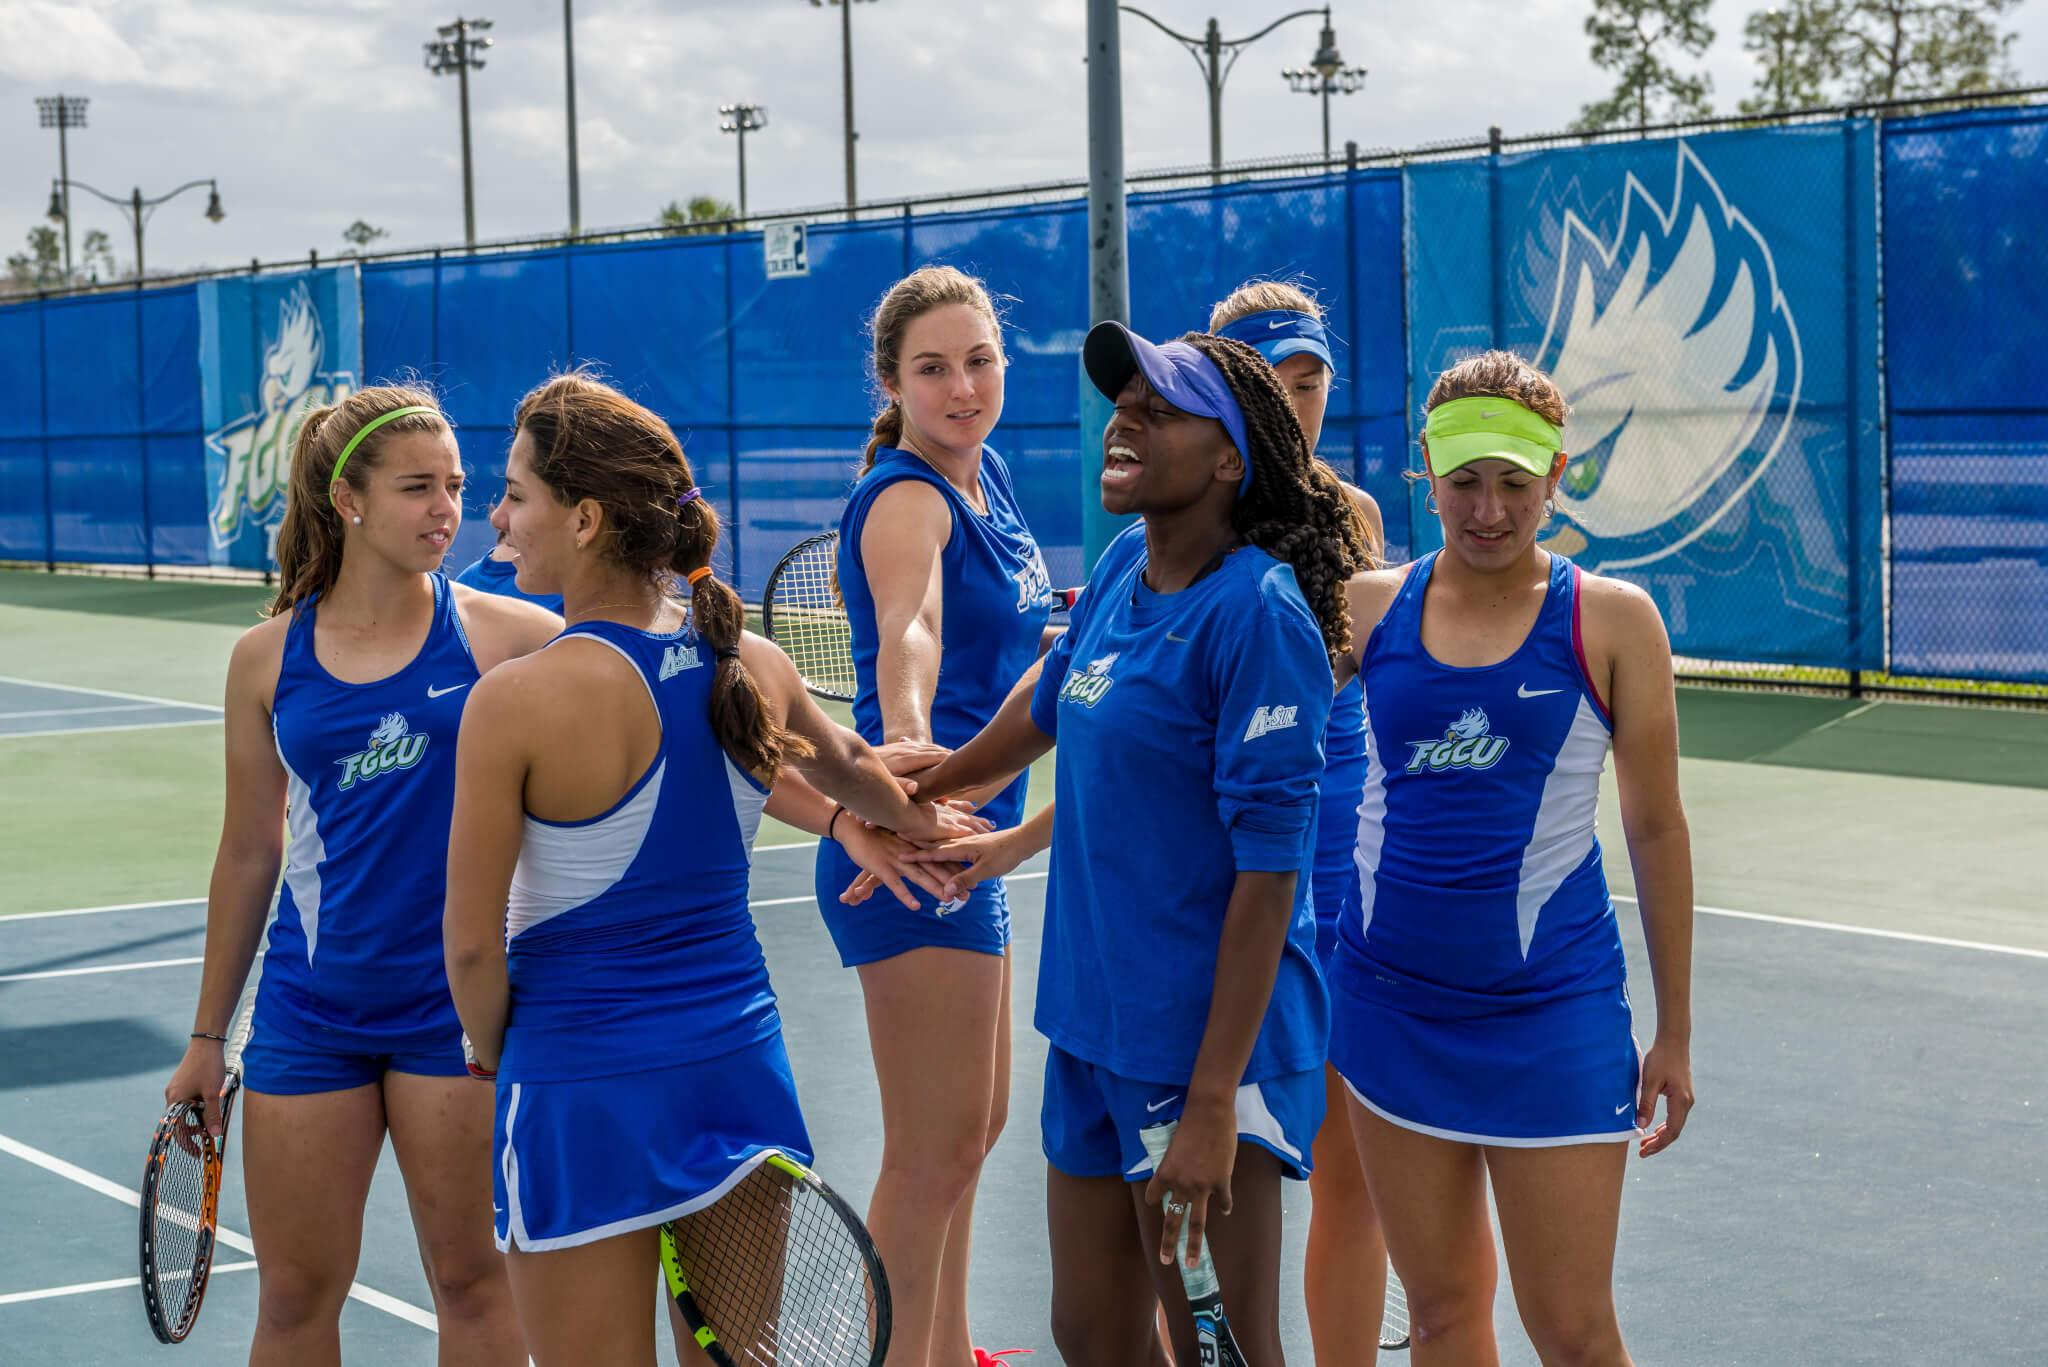 FGCU women's tennis welcomes four recruits for 2016 campaign